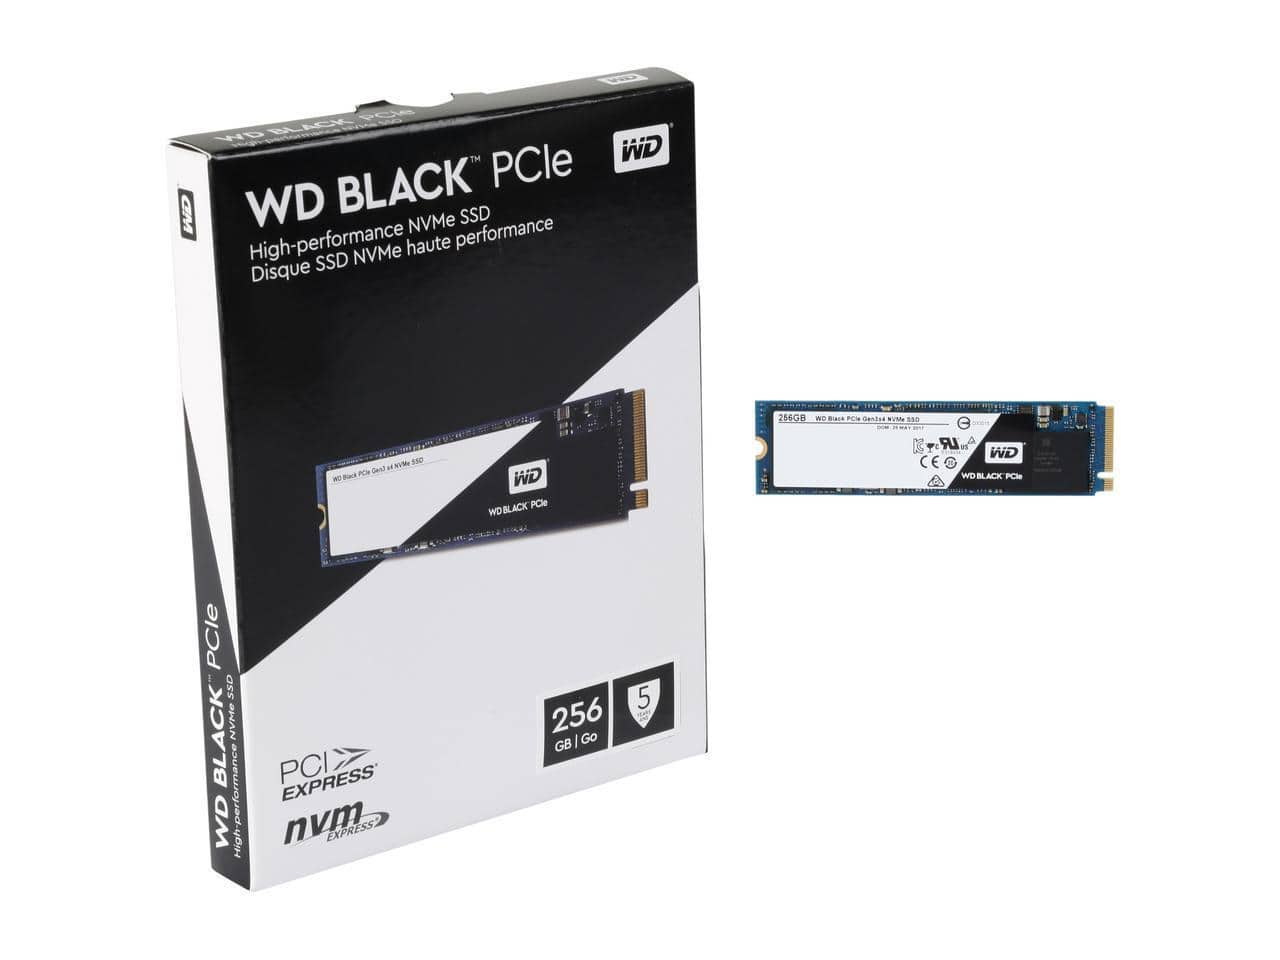 256GB WD Black Performance M.2 2280 PCIe NVMe Solid State Drive $89.99 + Free Shipping via Newegg